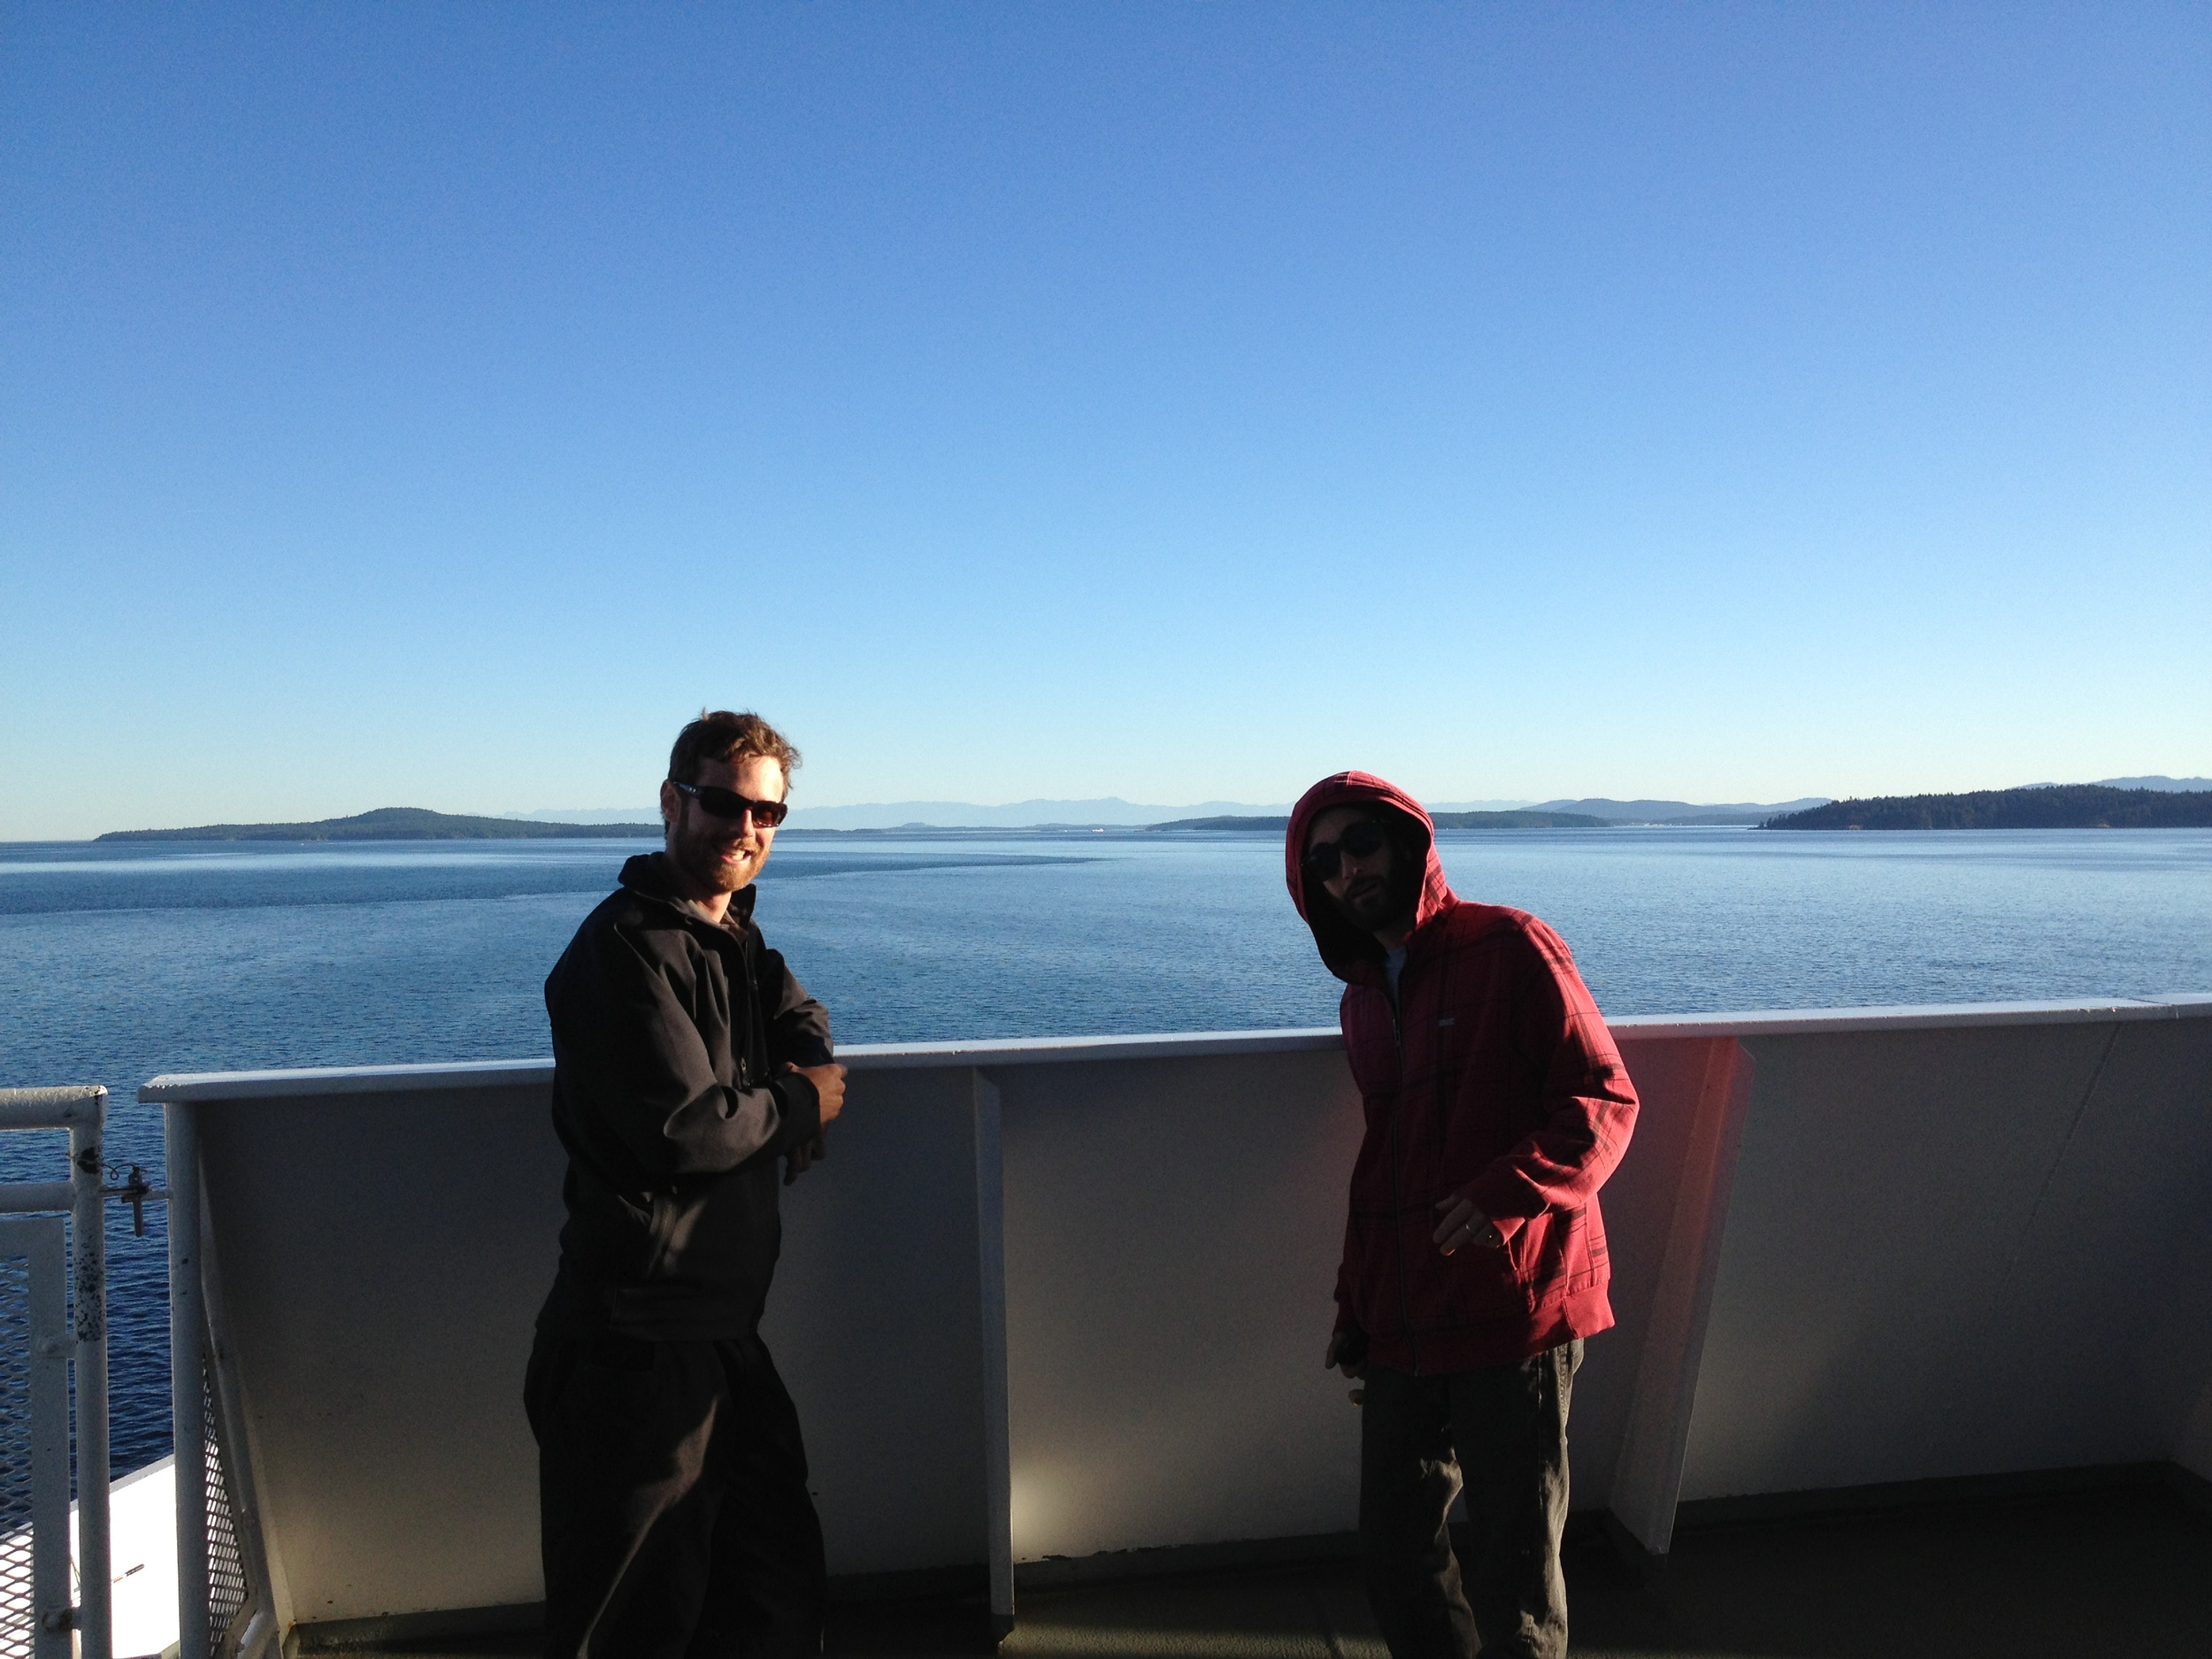 Chris Lay and Jesse Davidson finding a quiet place to enjoy the scenery.